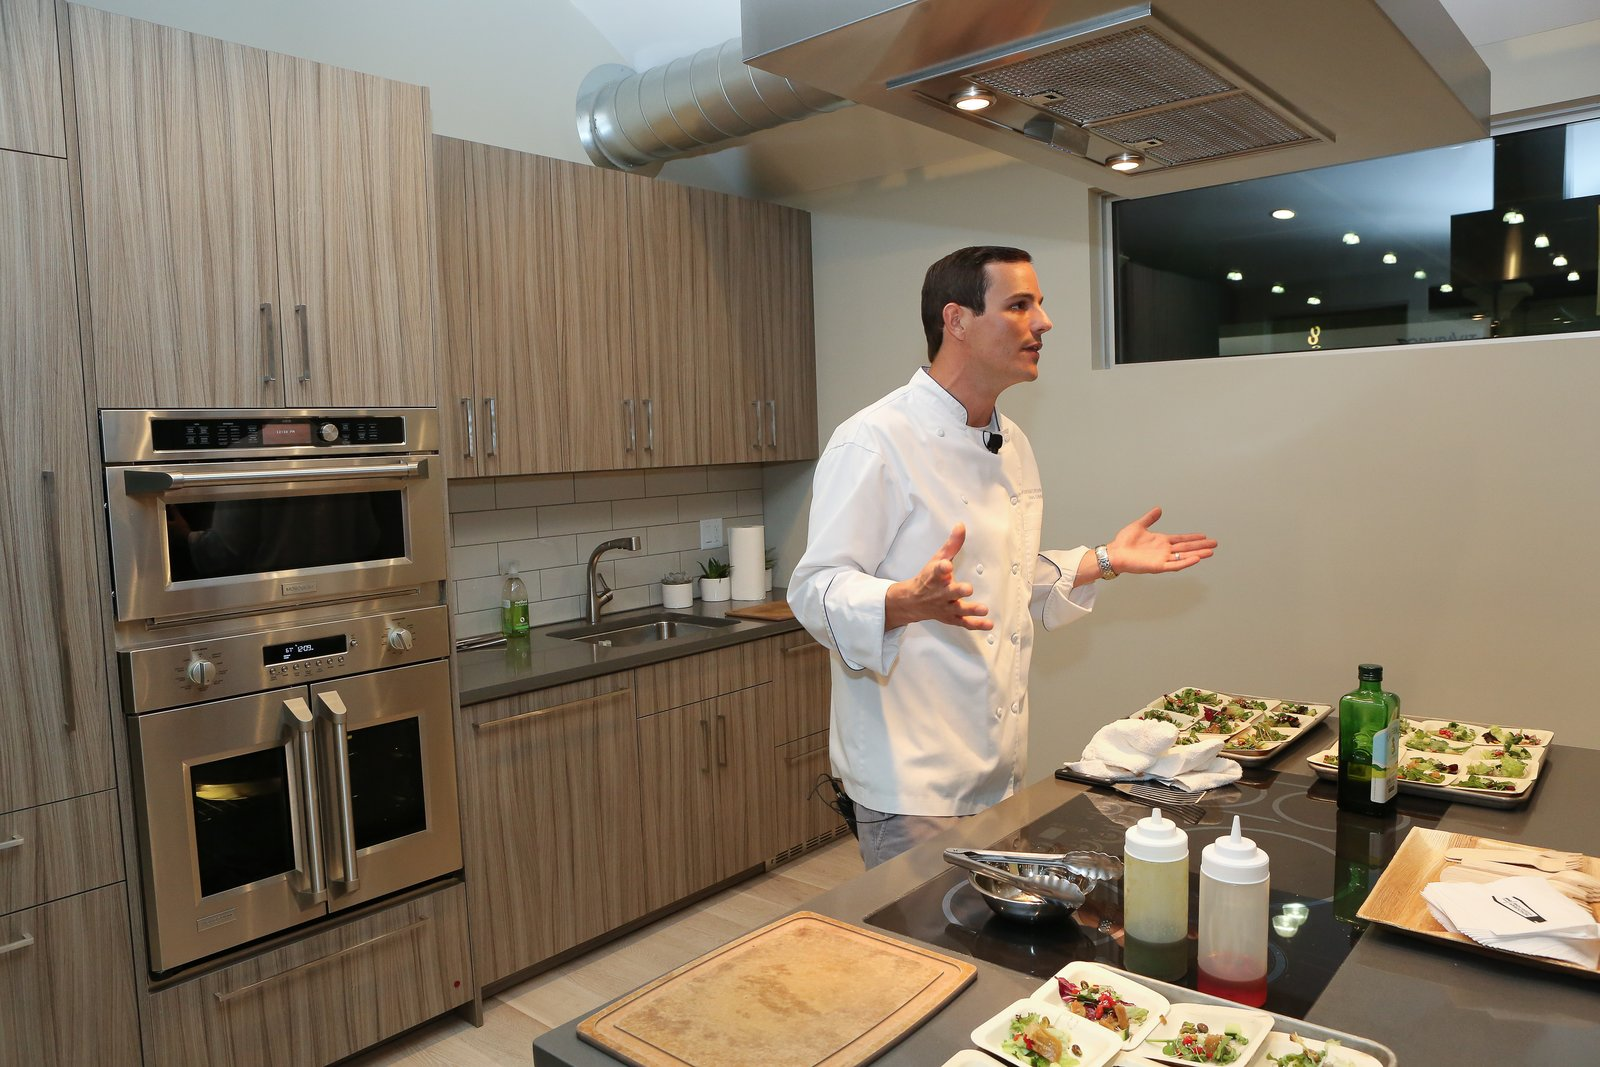 Liddell demonstrated the versatile, user-friendly features of Monogram appliances such as the induction cooktop, which boasts glide touch controls and an LED display.  Photo 4 of 6 in Monogram Modern Home Tour Joins the Los Angeles Design Scene